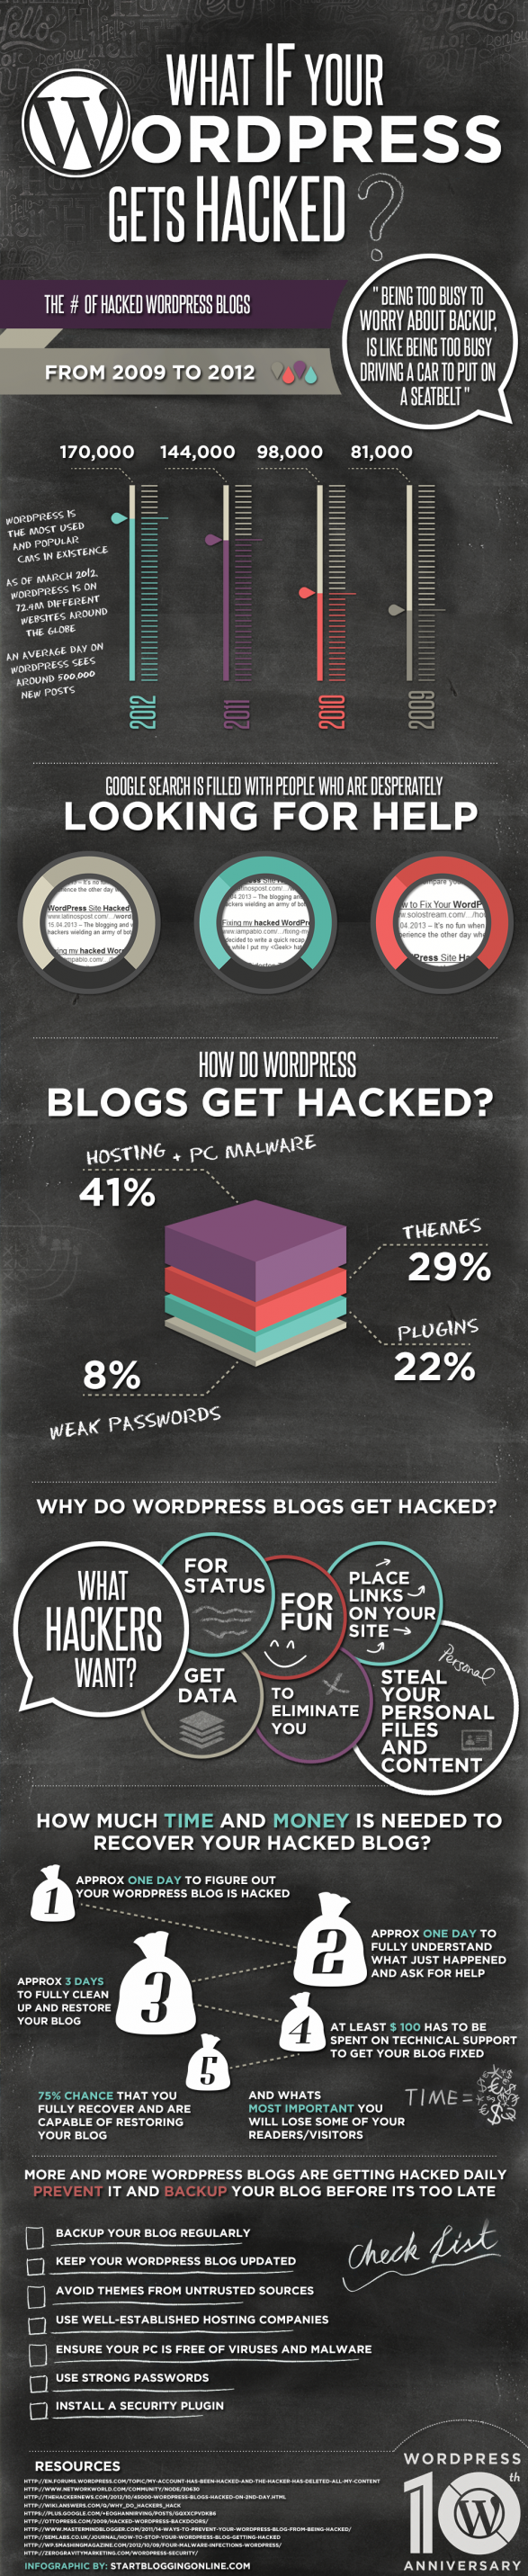 What If Your WordPress Gets Hacked